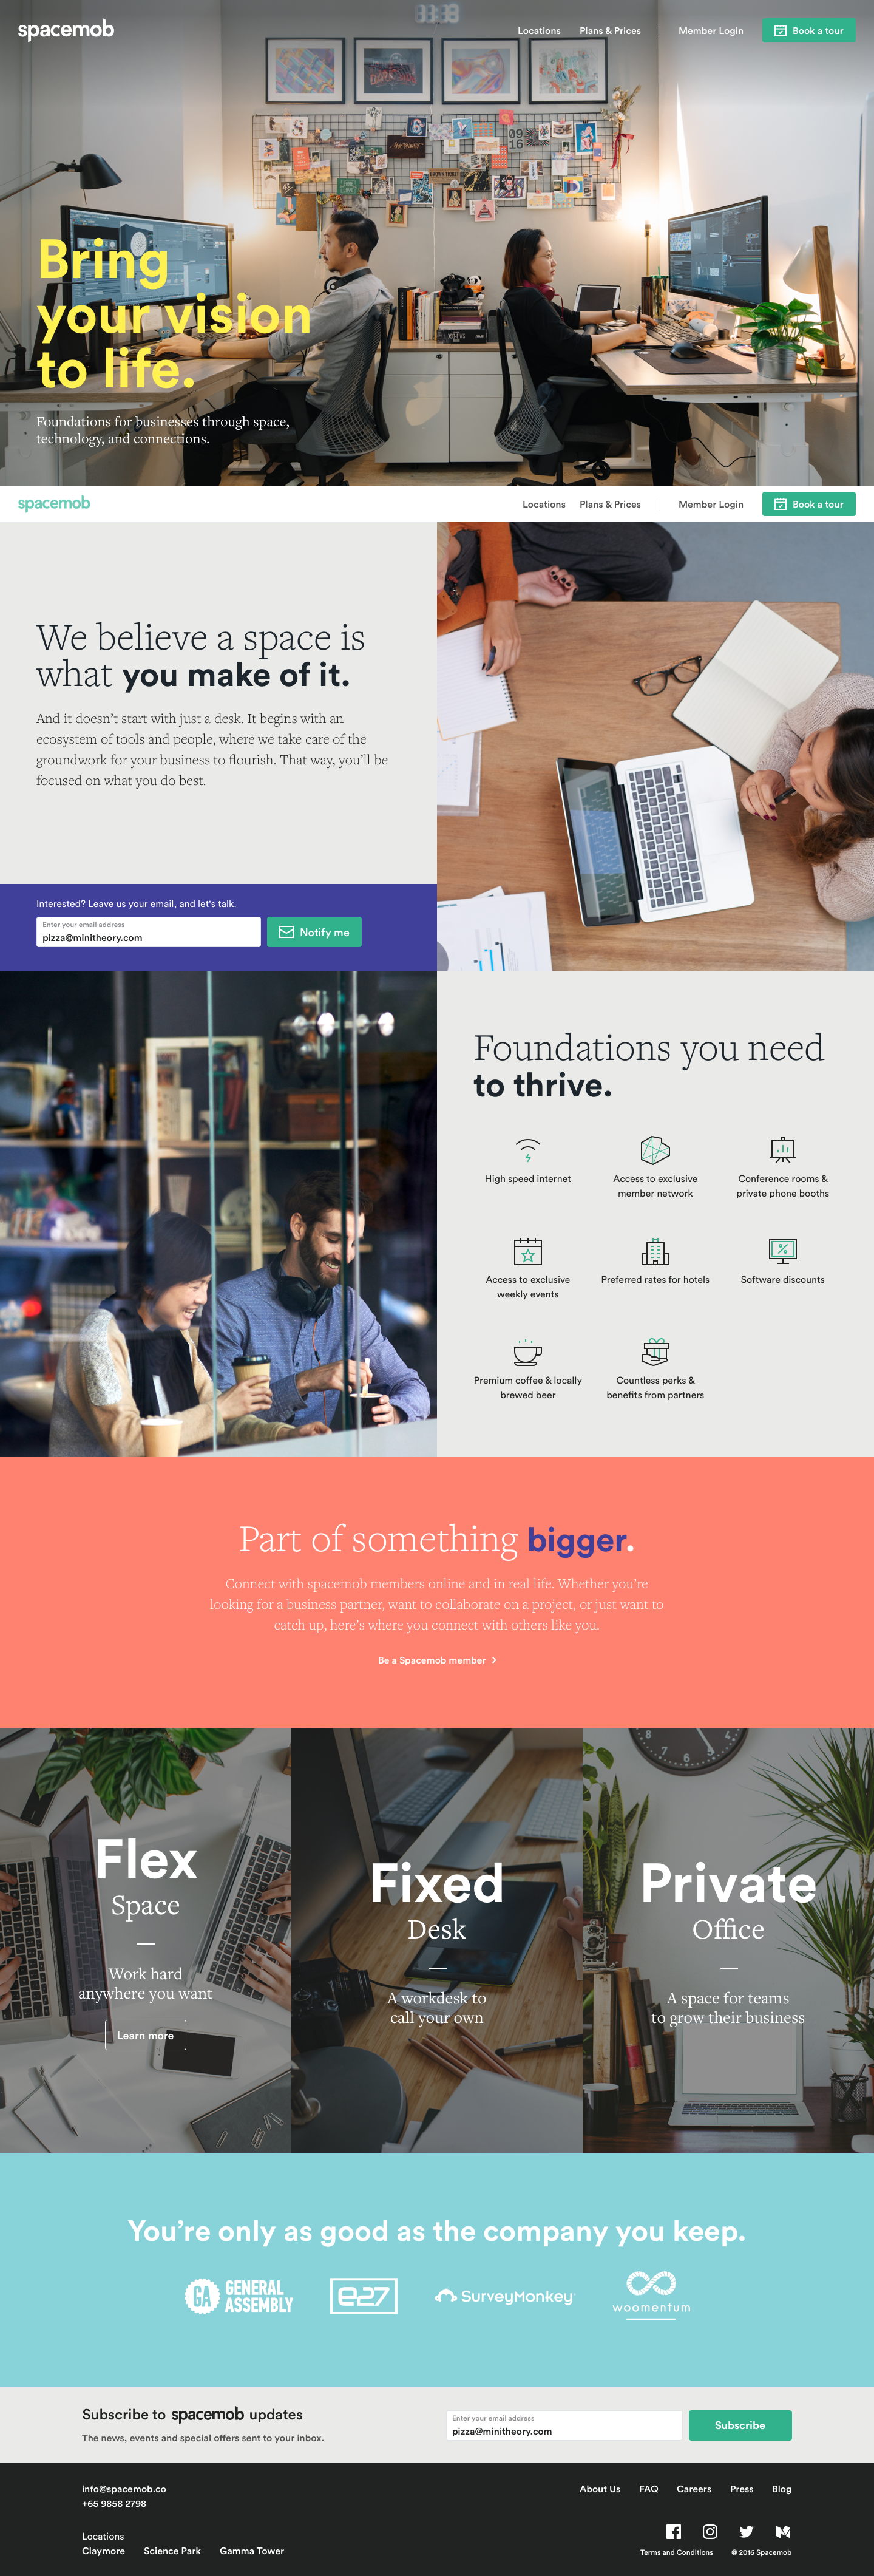 The final homepage design